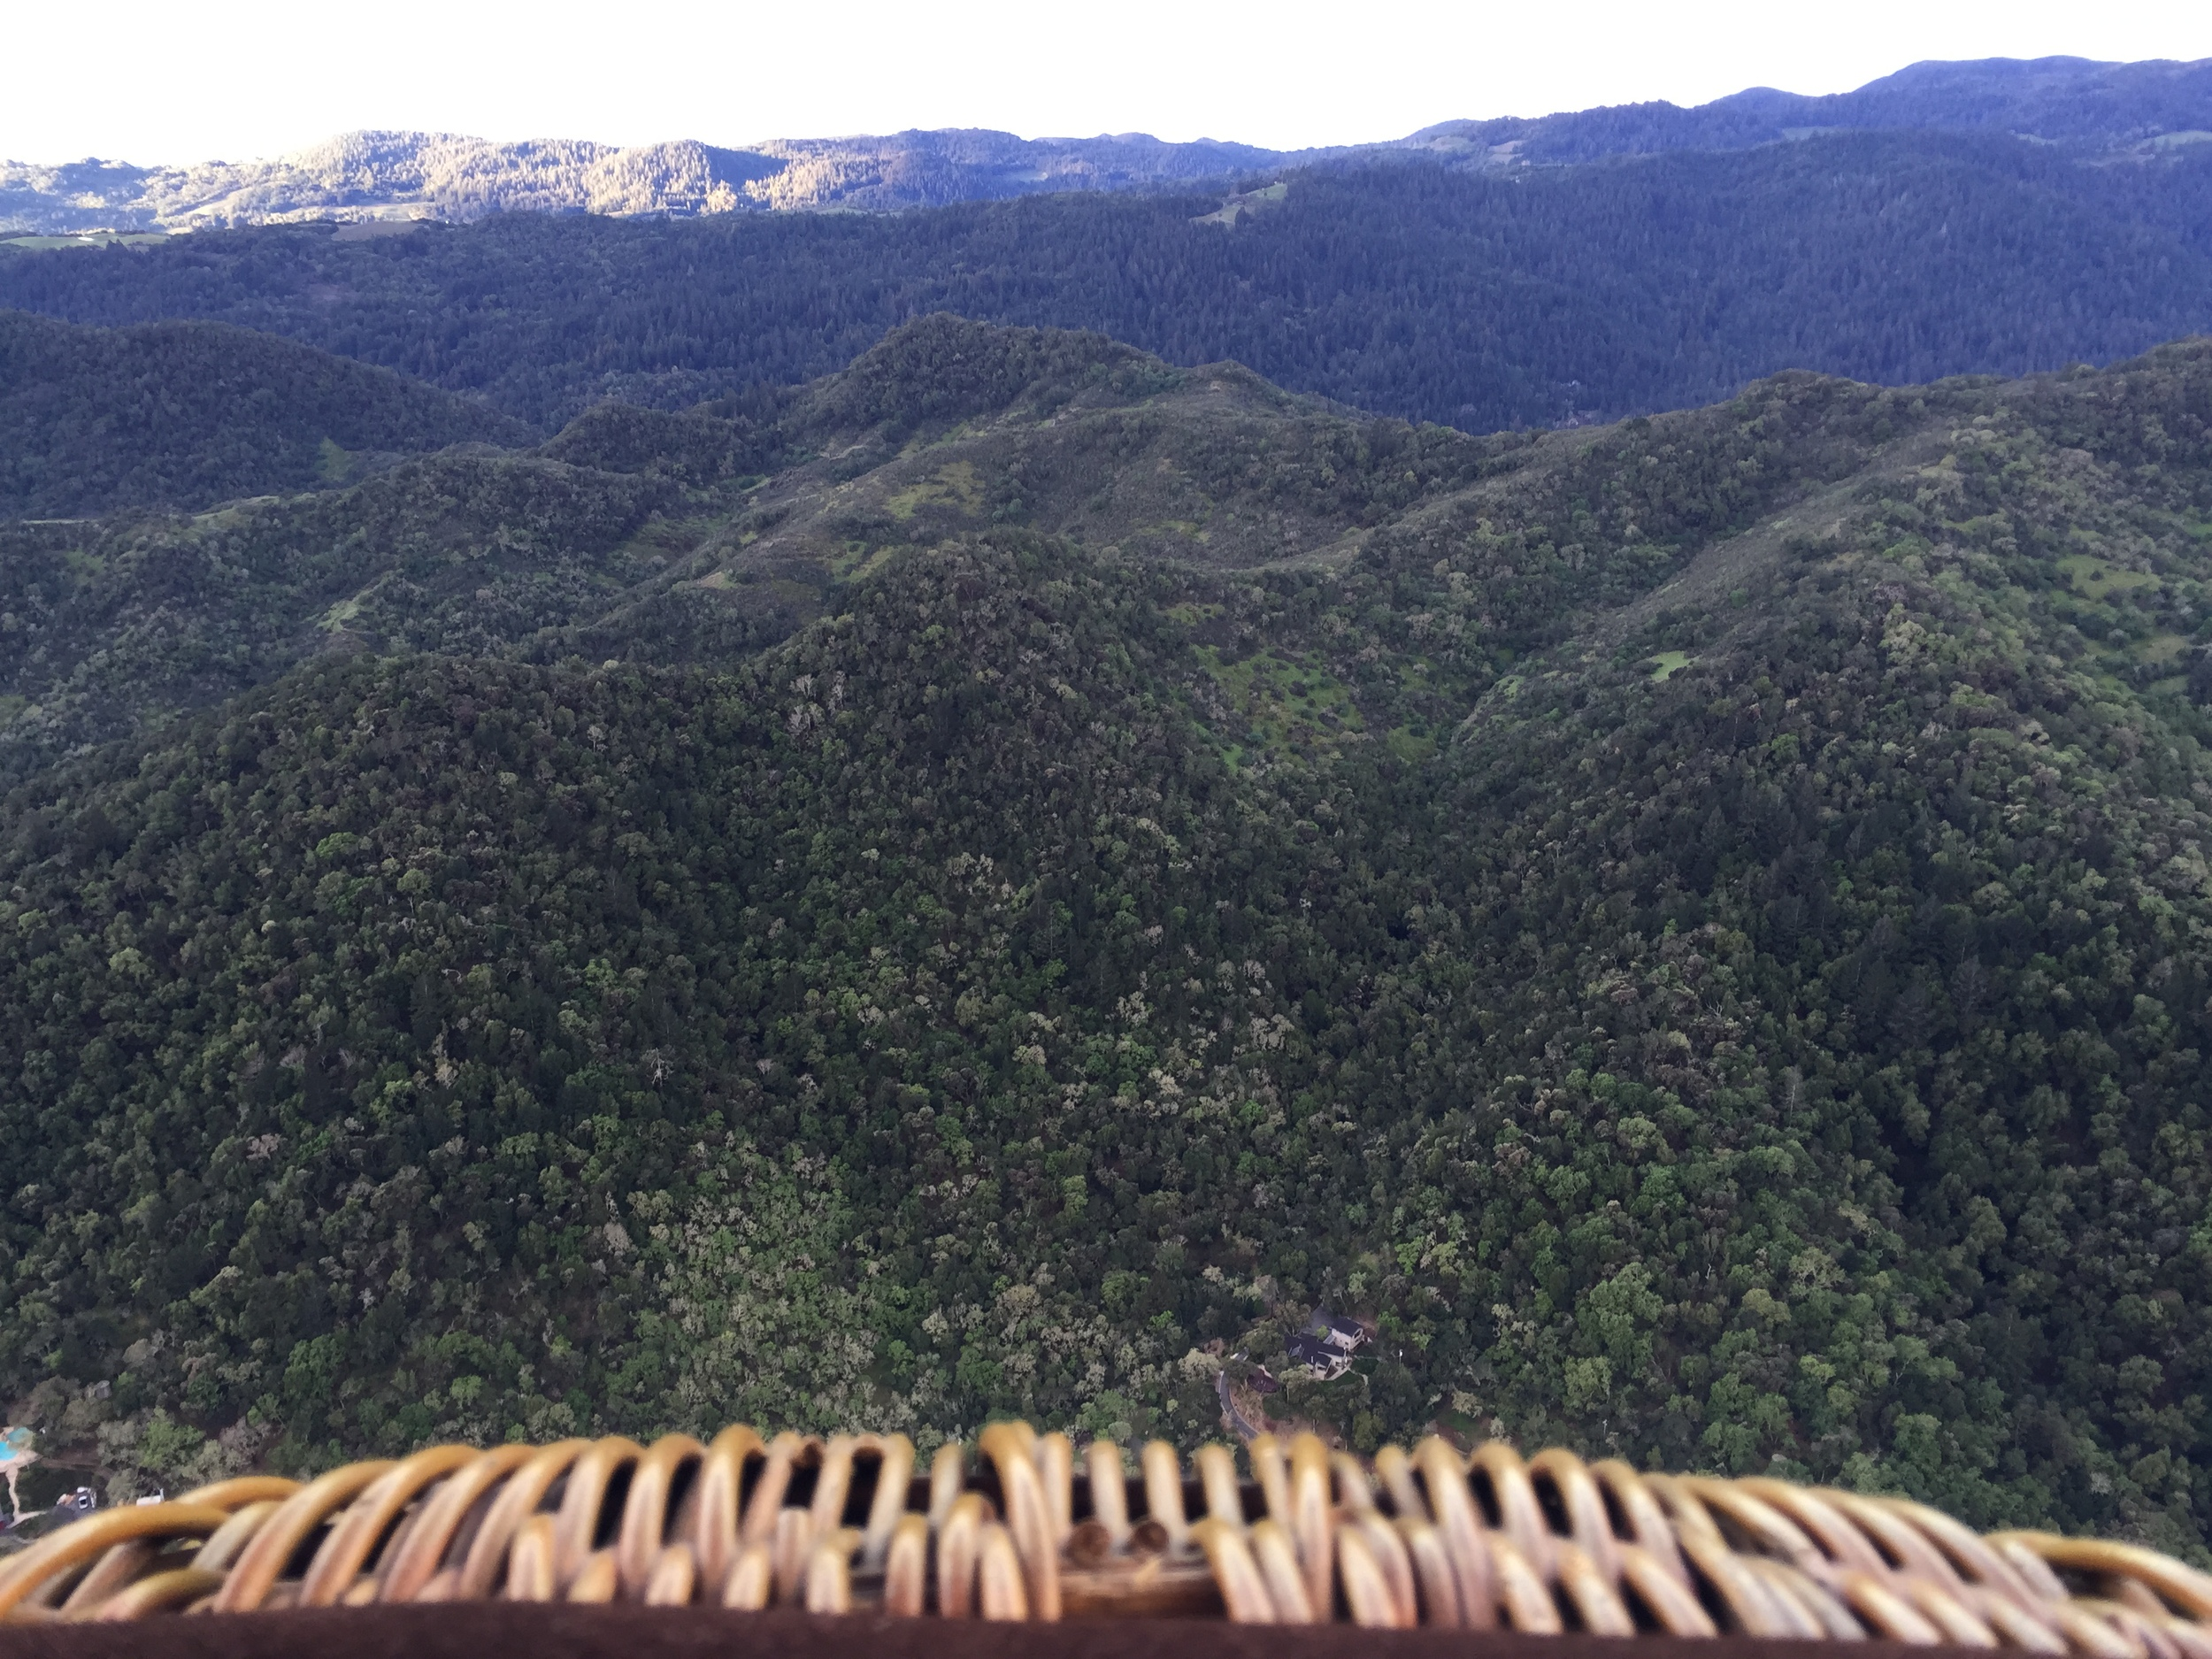 View from the edge of ourwicker basket3,000 feet above the vineyards.